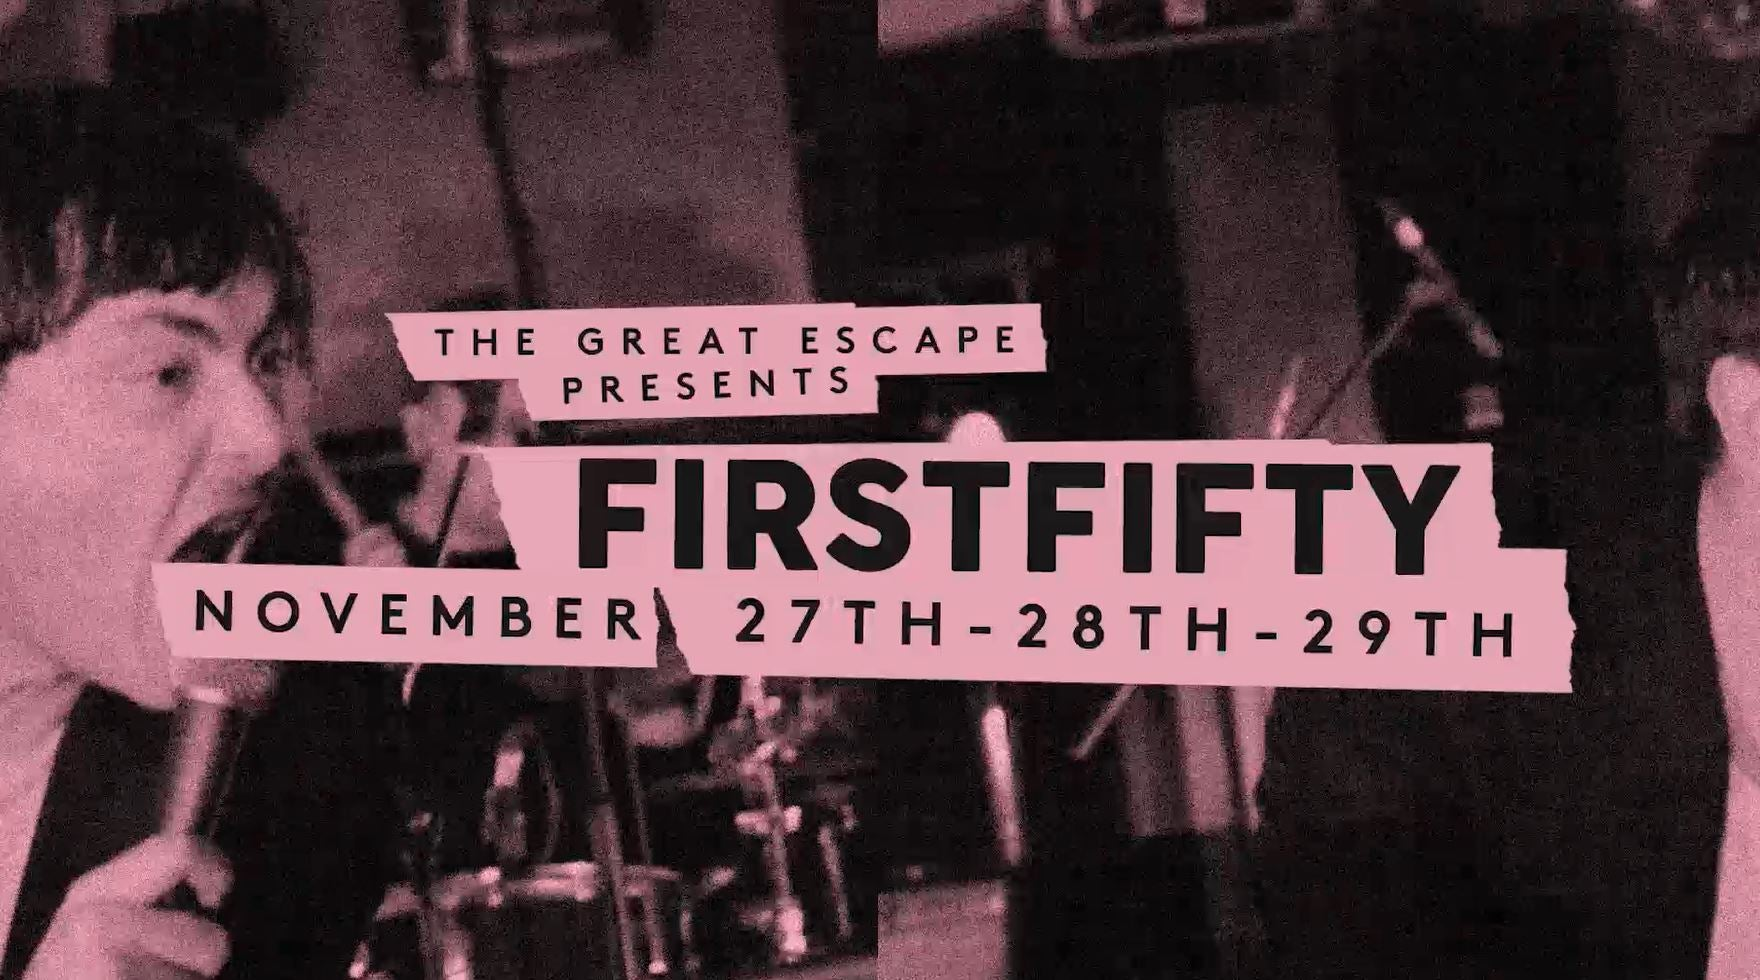 The Great Escape #FIRSTFIFTY Is Back THIS MONTH! Here's Everything You Need To Know...